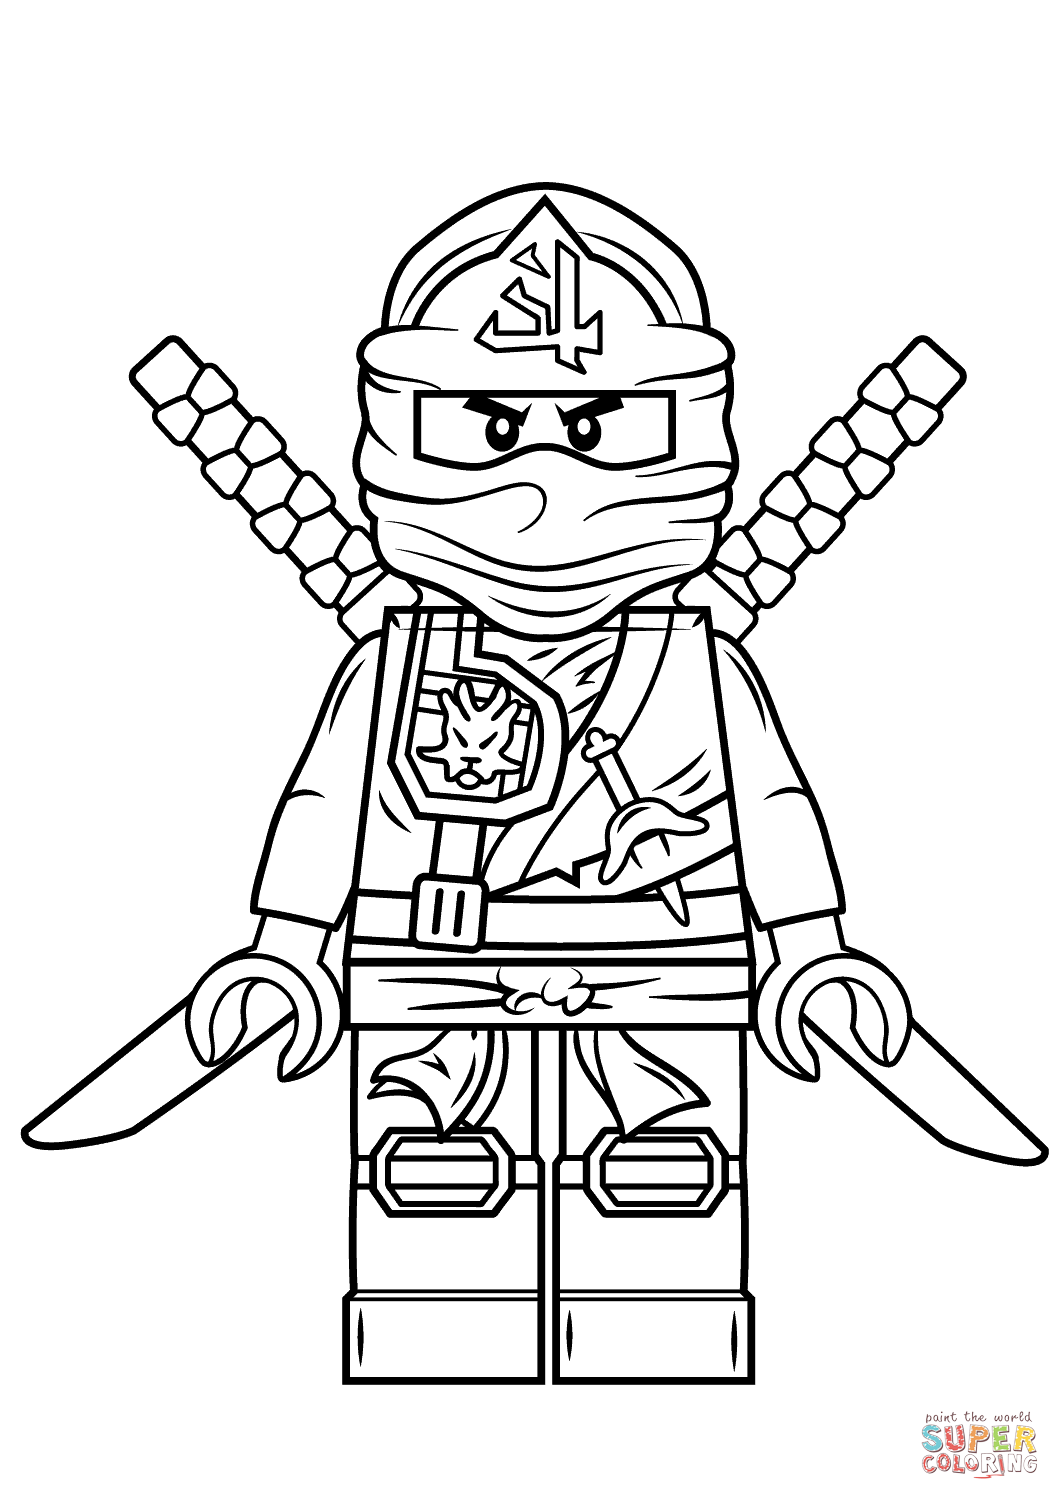 Klocki Lego Ninjago Green Ninja Super Coloring Lego Coloring Pages Ninjago Coloring Pages Lego Movie Coloring Pages